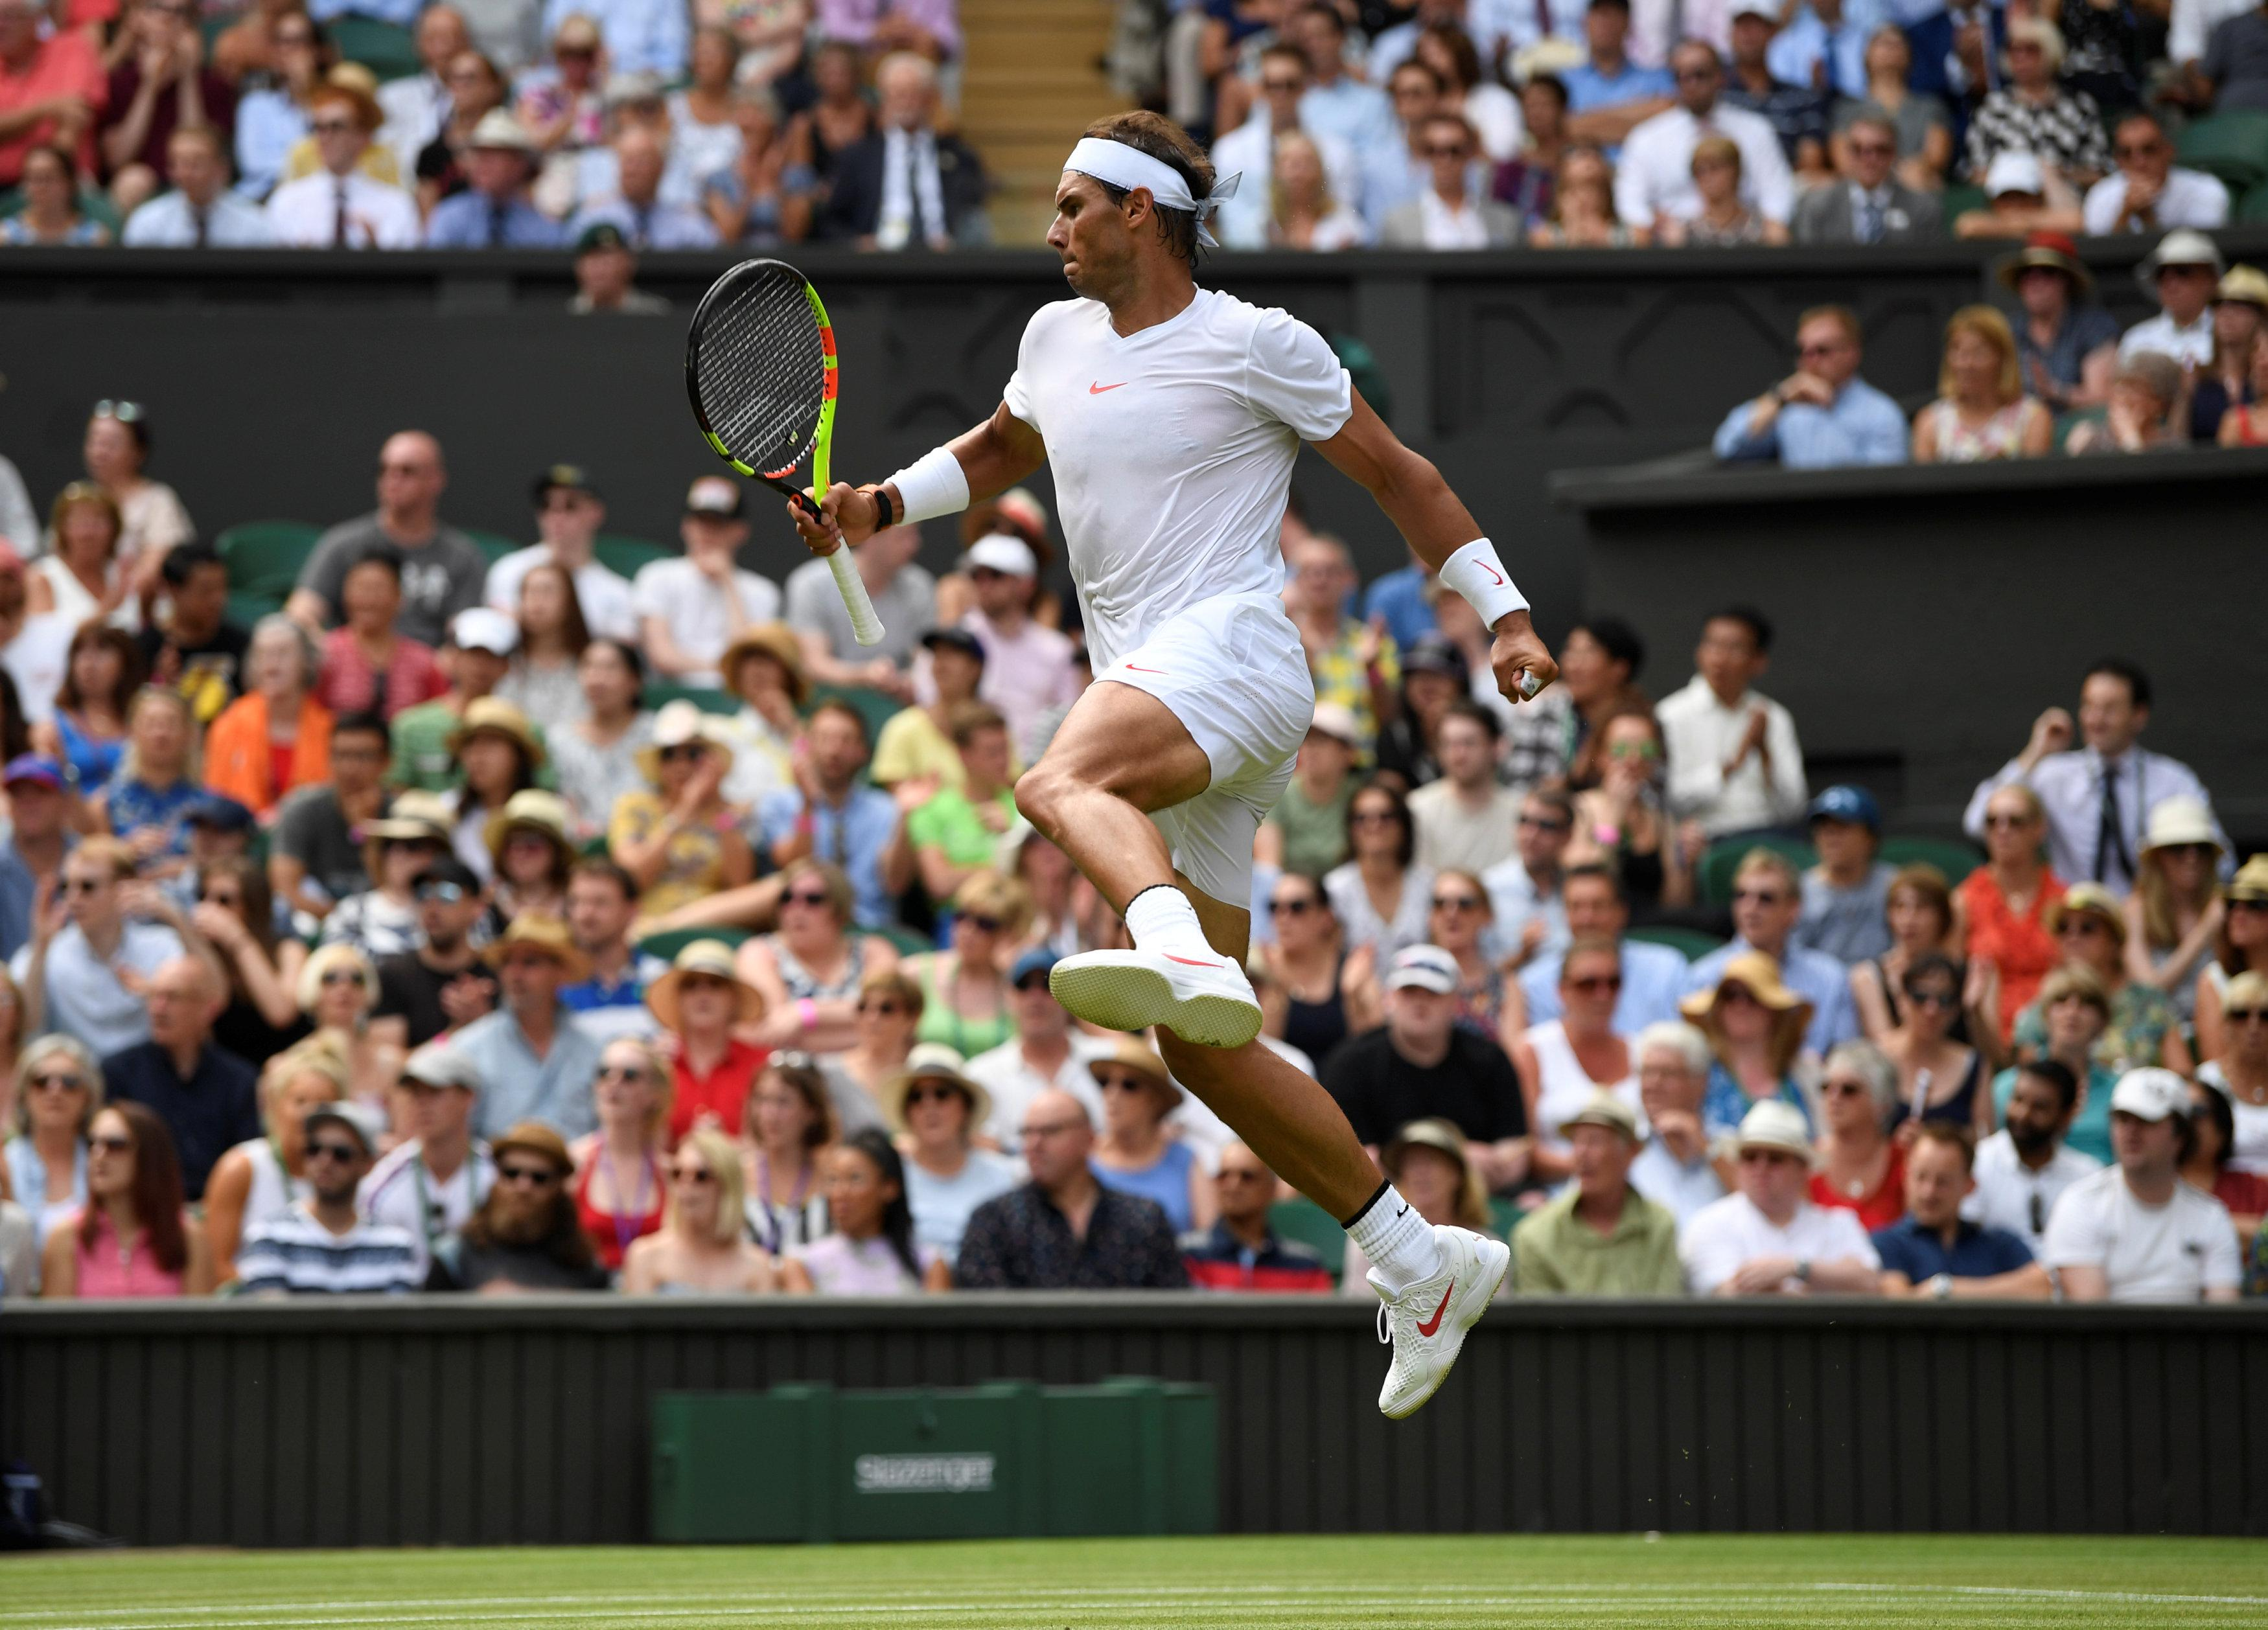 Nadal leaps in celebration as he seals victory to keep on course for his third Wimbledon title